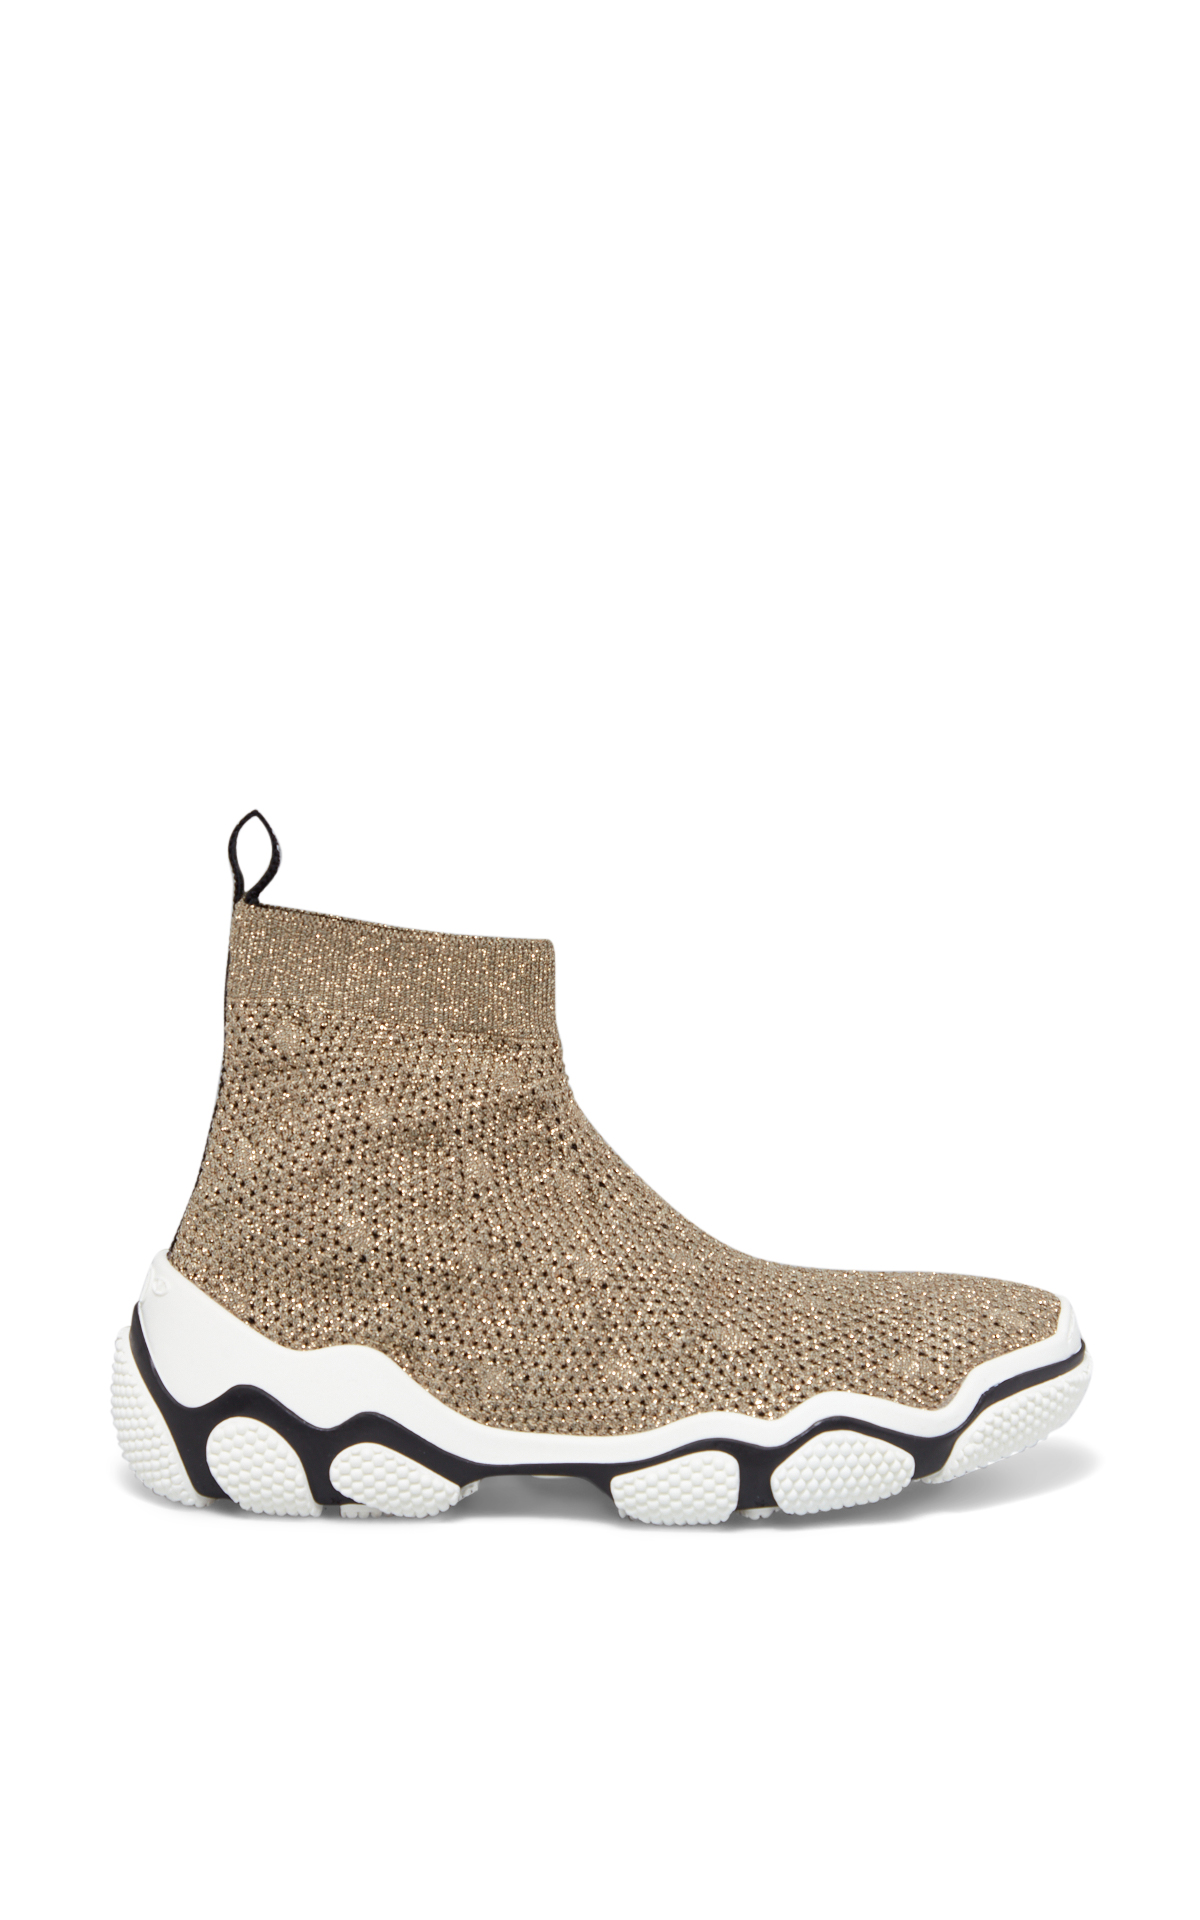 La Vallée Village REDValentino Gold sneakers stretch knit